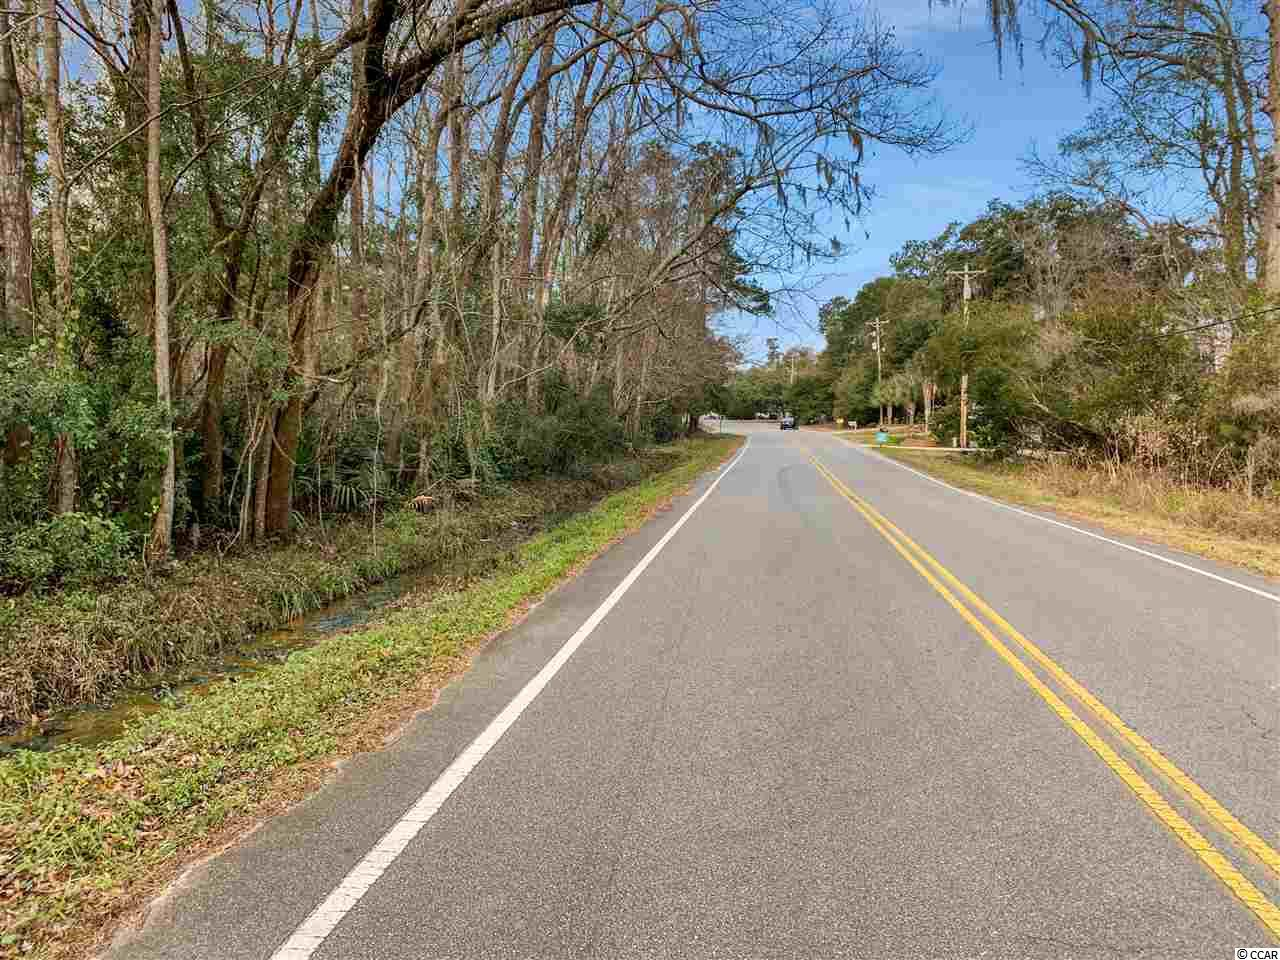 Looking for that piece of paradise that is just a short bike ride to Pawleys Beaches? This lot is almost half an acre and sits high and dry. Whether you're looking to stroll on the beach, crab in the creek, or bike the neck, this lot is in a great location giving you so many options.